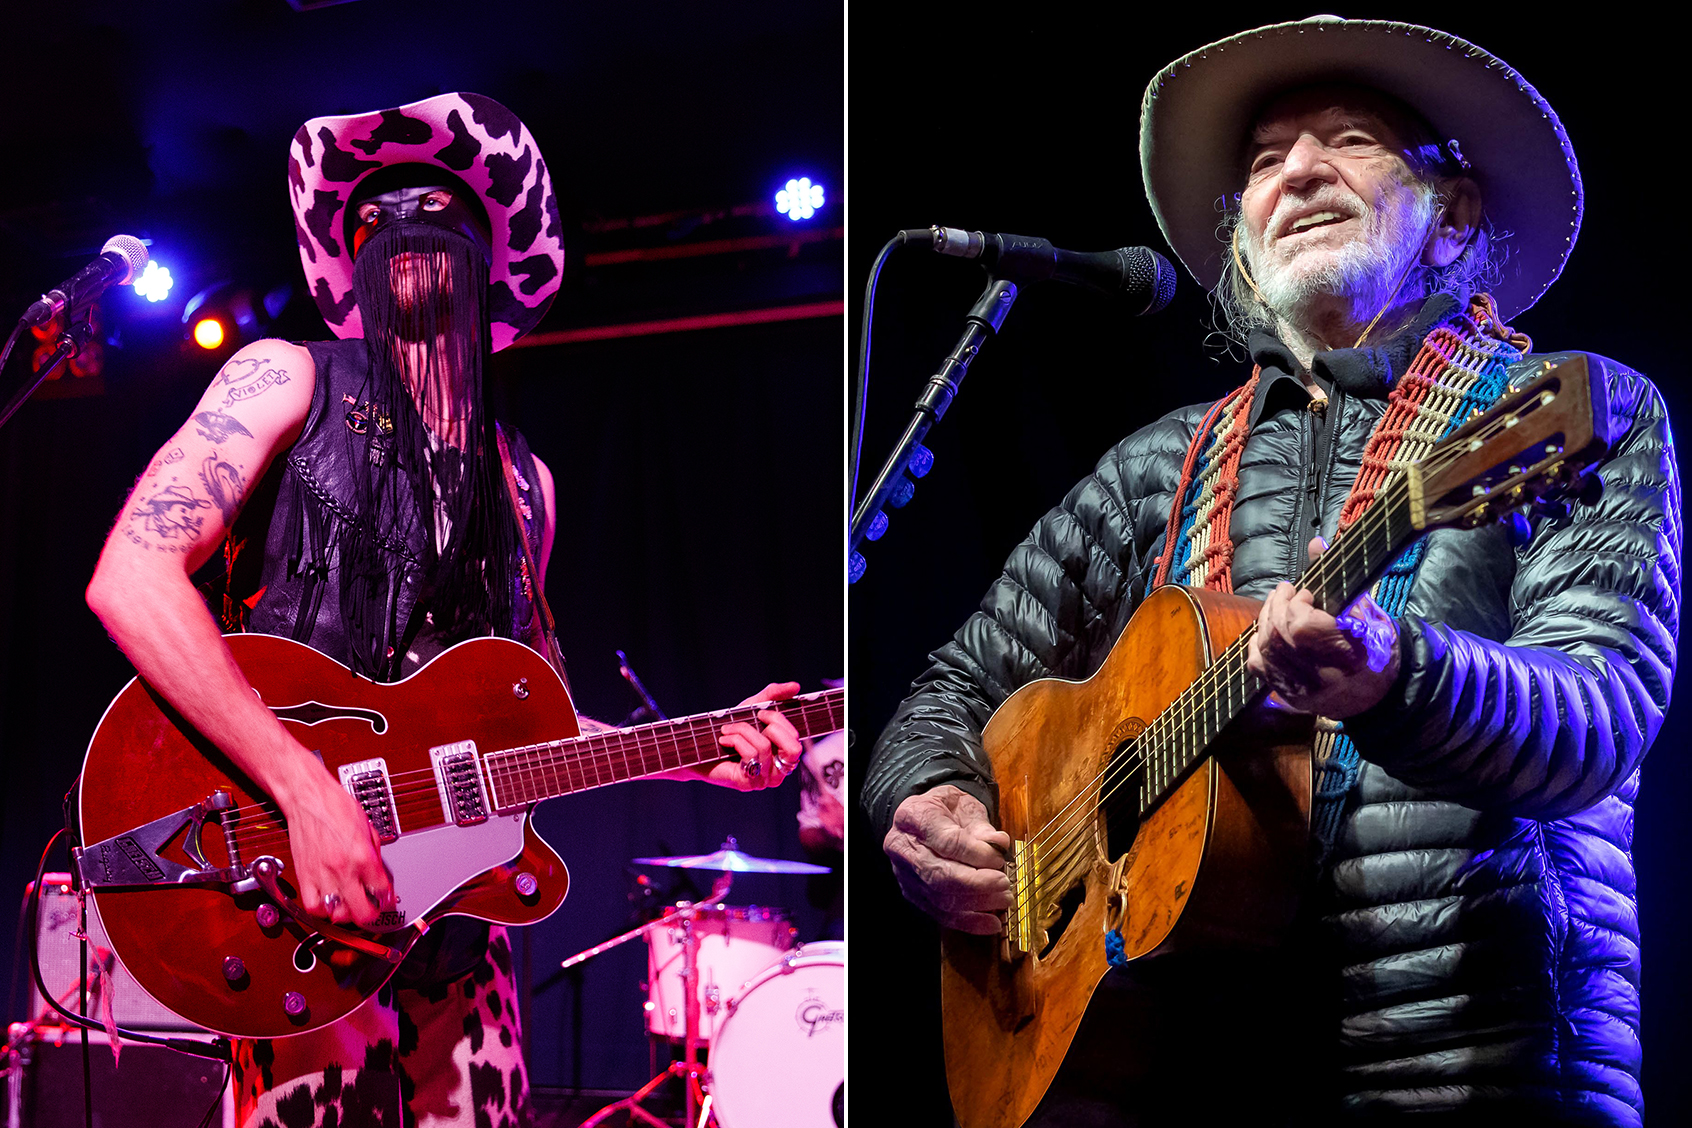 Luck Reunion 2020 Lineup: Willie Nelson, Lucinda Williams, Orville Peck Set to Perform